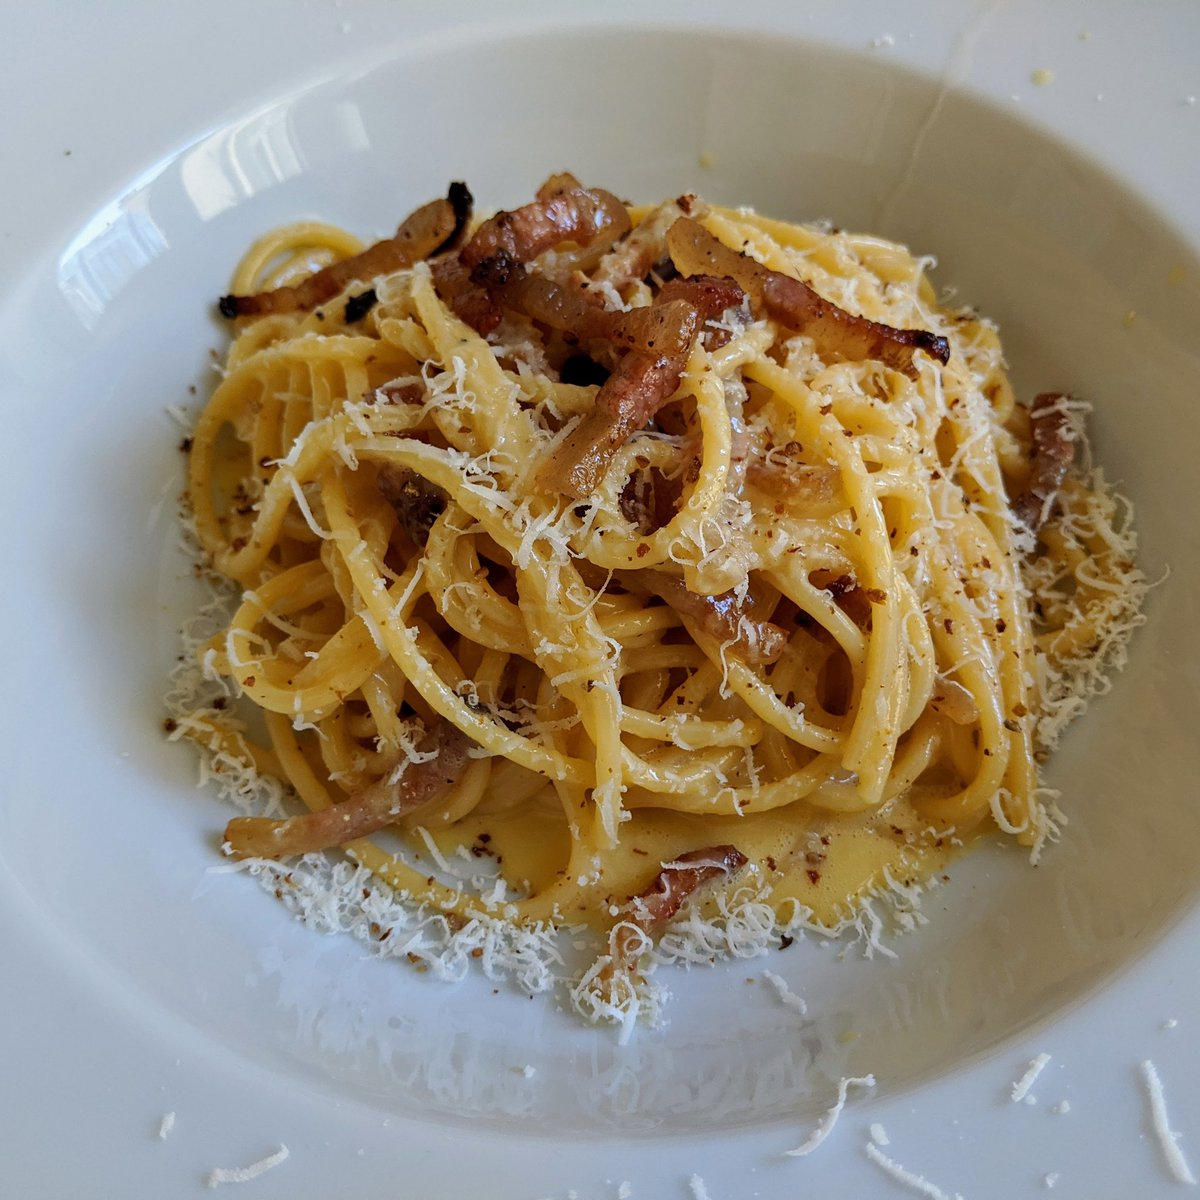 And for #carbonaraday, here's a proper #carbonara, with only #eggs, #guanciale, and #pecorinoromano. And absolutely no cream. #nocreamincarbonarapic.twitter.com/h8XtGiIgVX